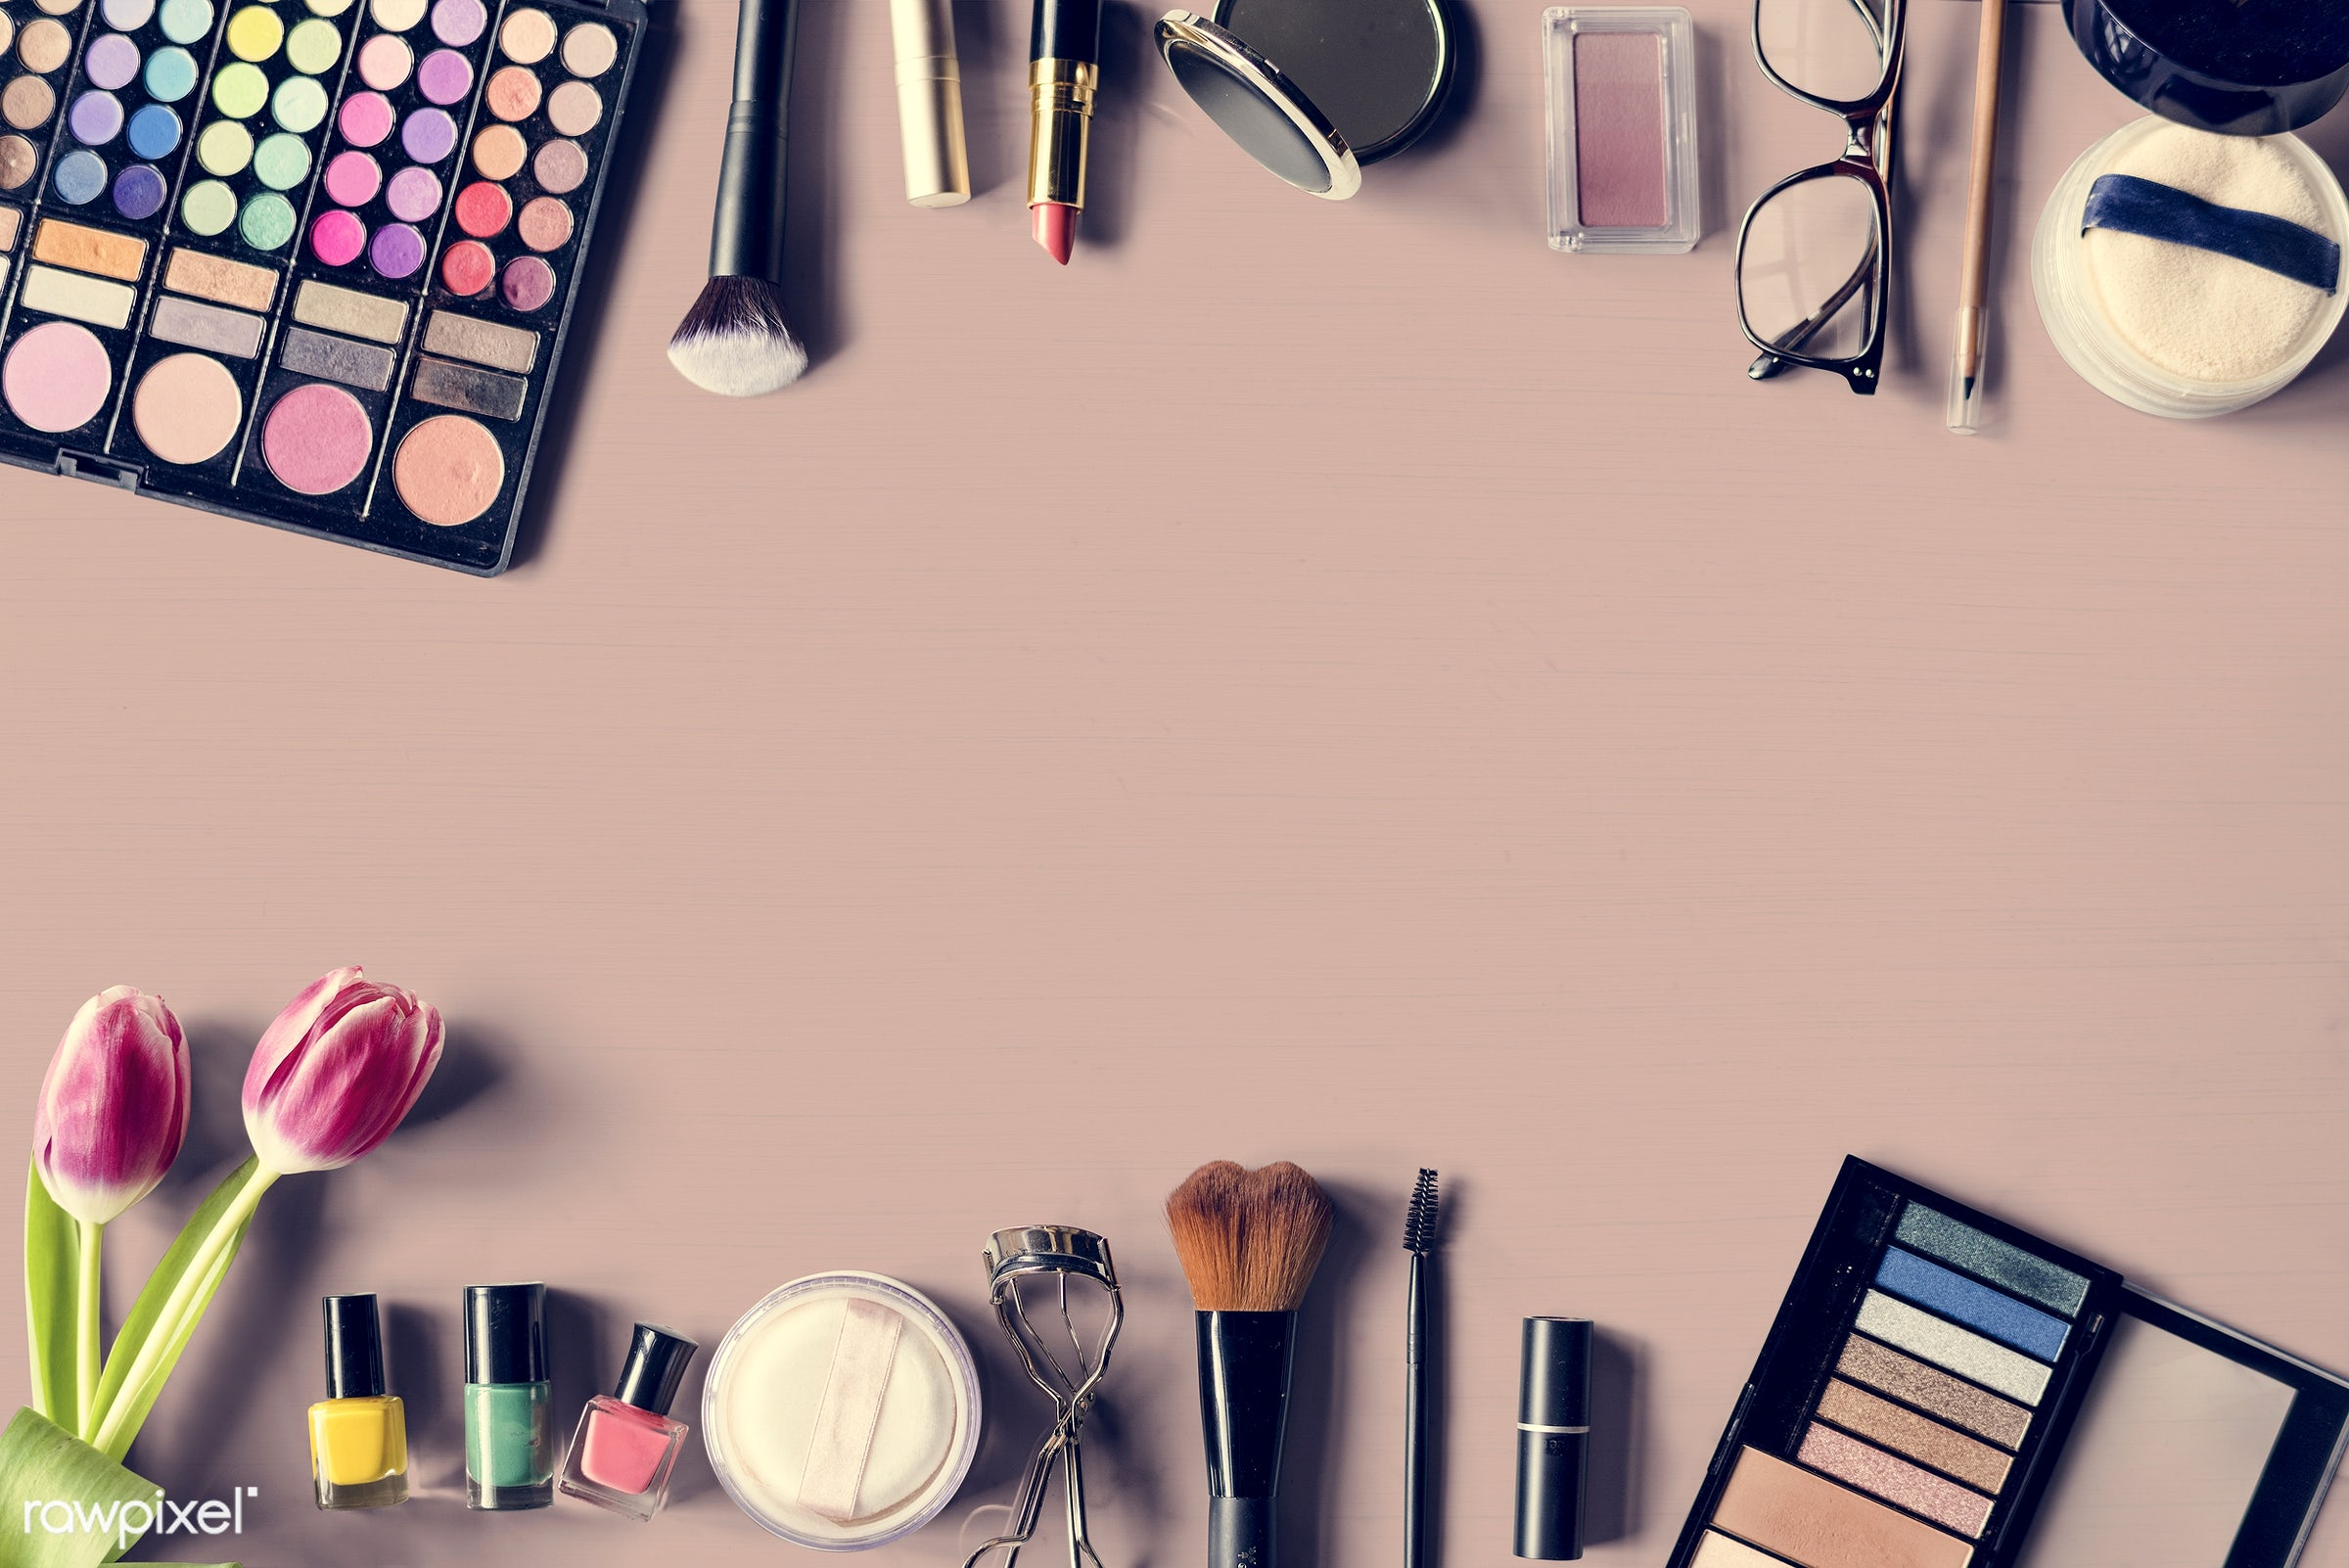 blush, accessories, apply, beautiful, beauty, brushes, care, collection, colors, cosmetic, decorative, eye shadow, face,...